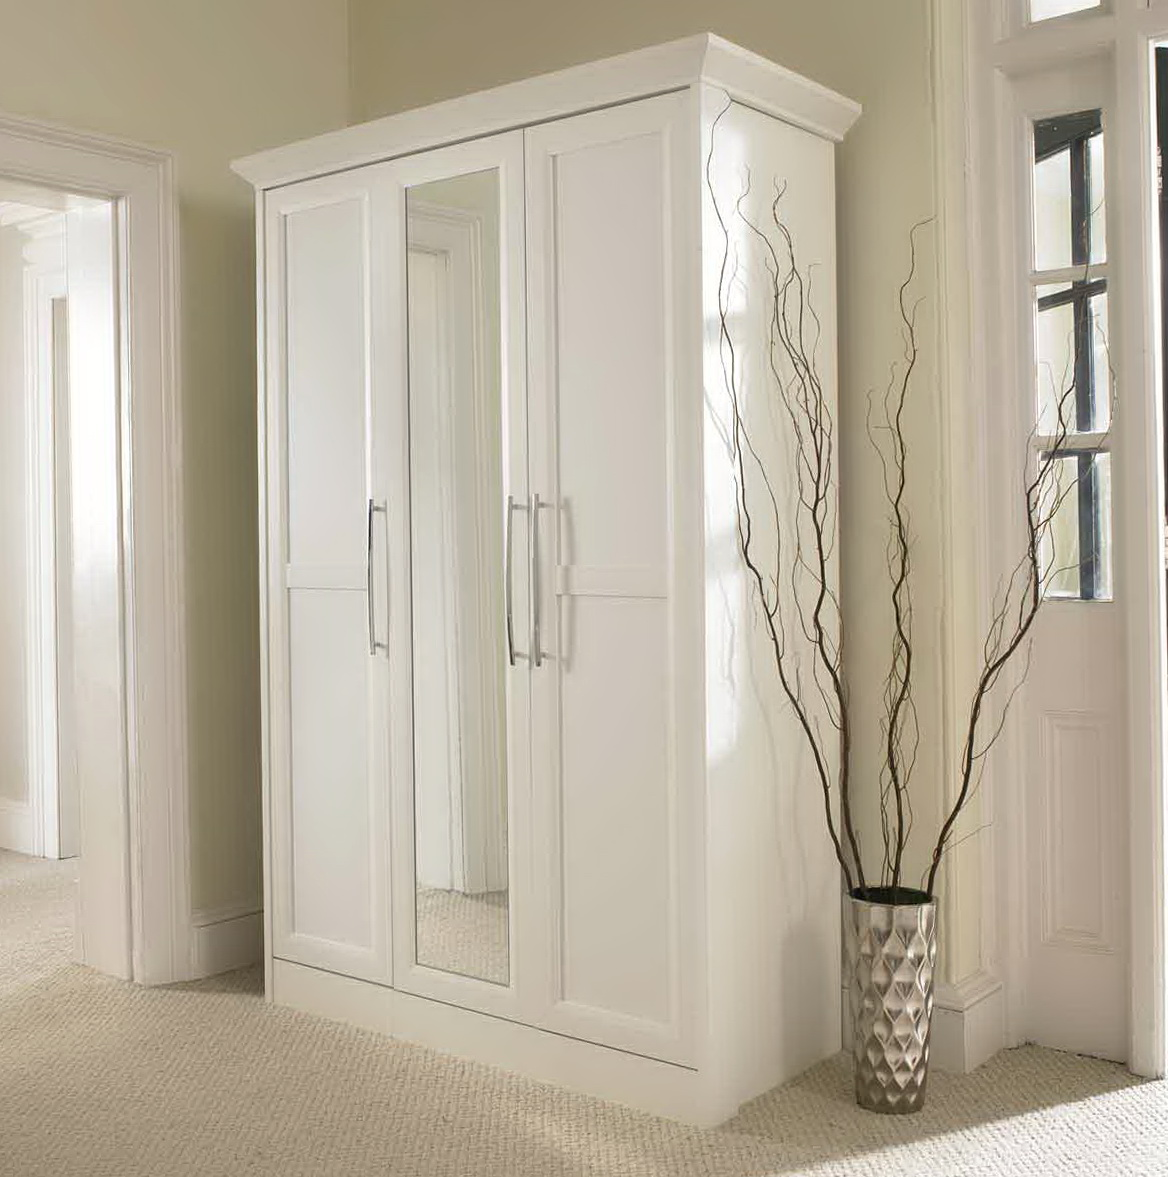 full xbbqqeaccohl door china furniture productimage closet wardrobe mirrored bedroom